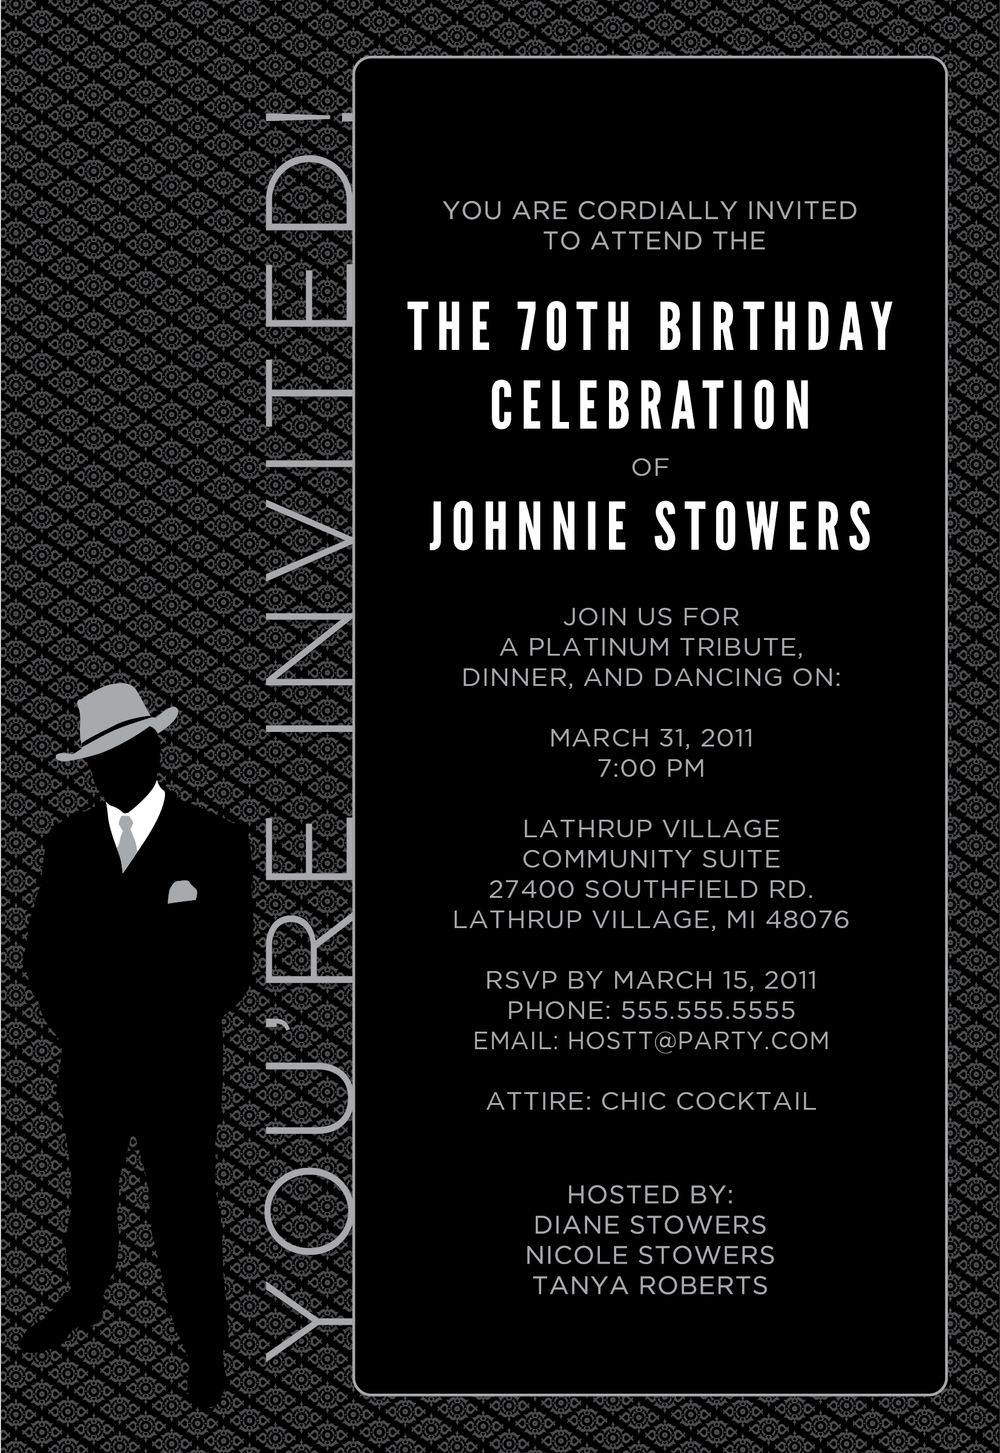 70th Birthday Celebration Invitation